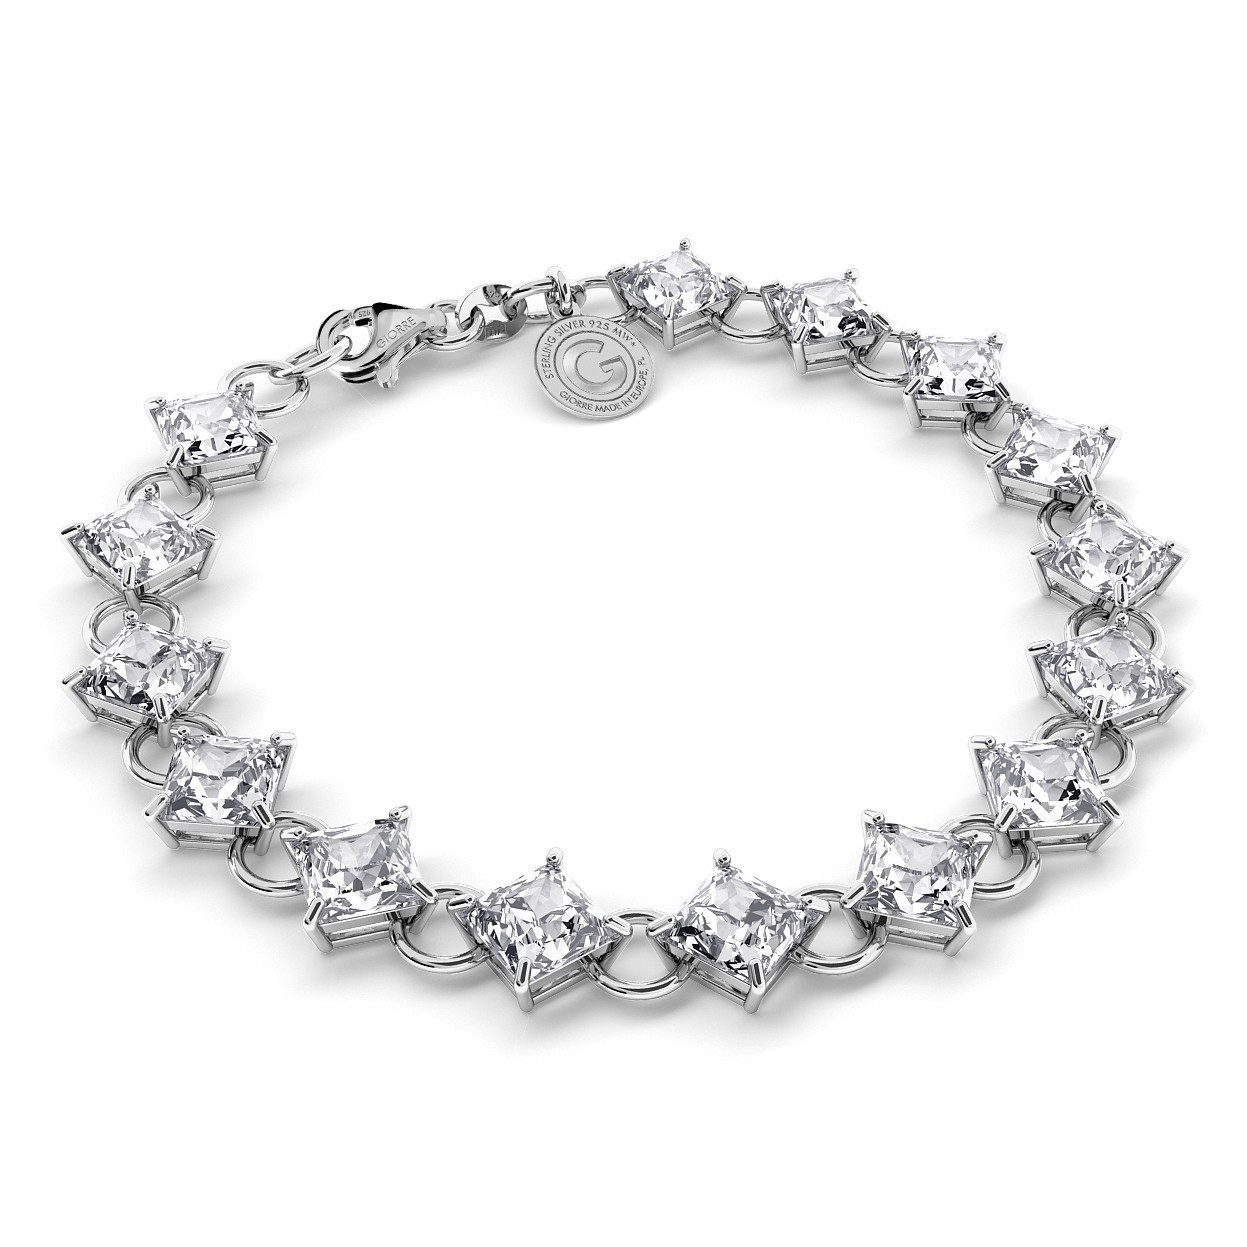 BRACELET WITH ZIRCONS, WEDDING JEWELLERY - MODEL 1